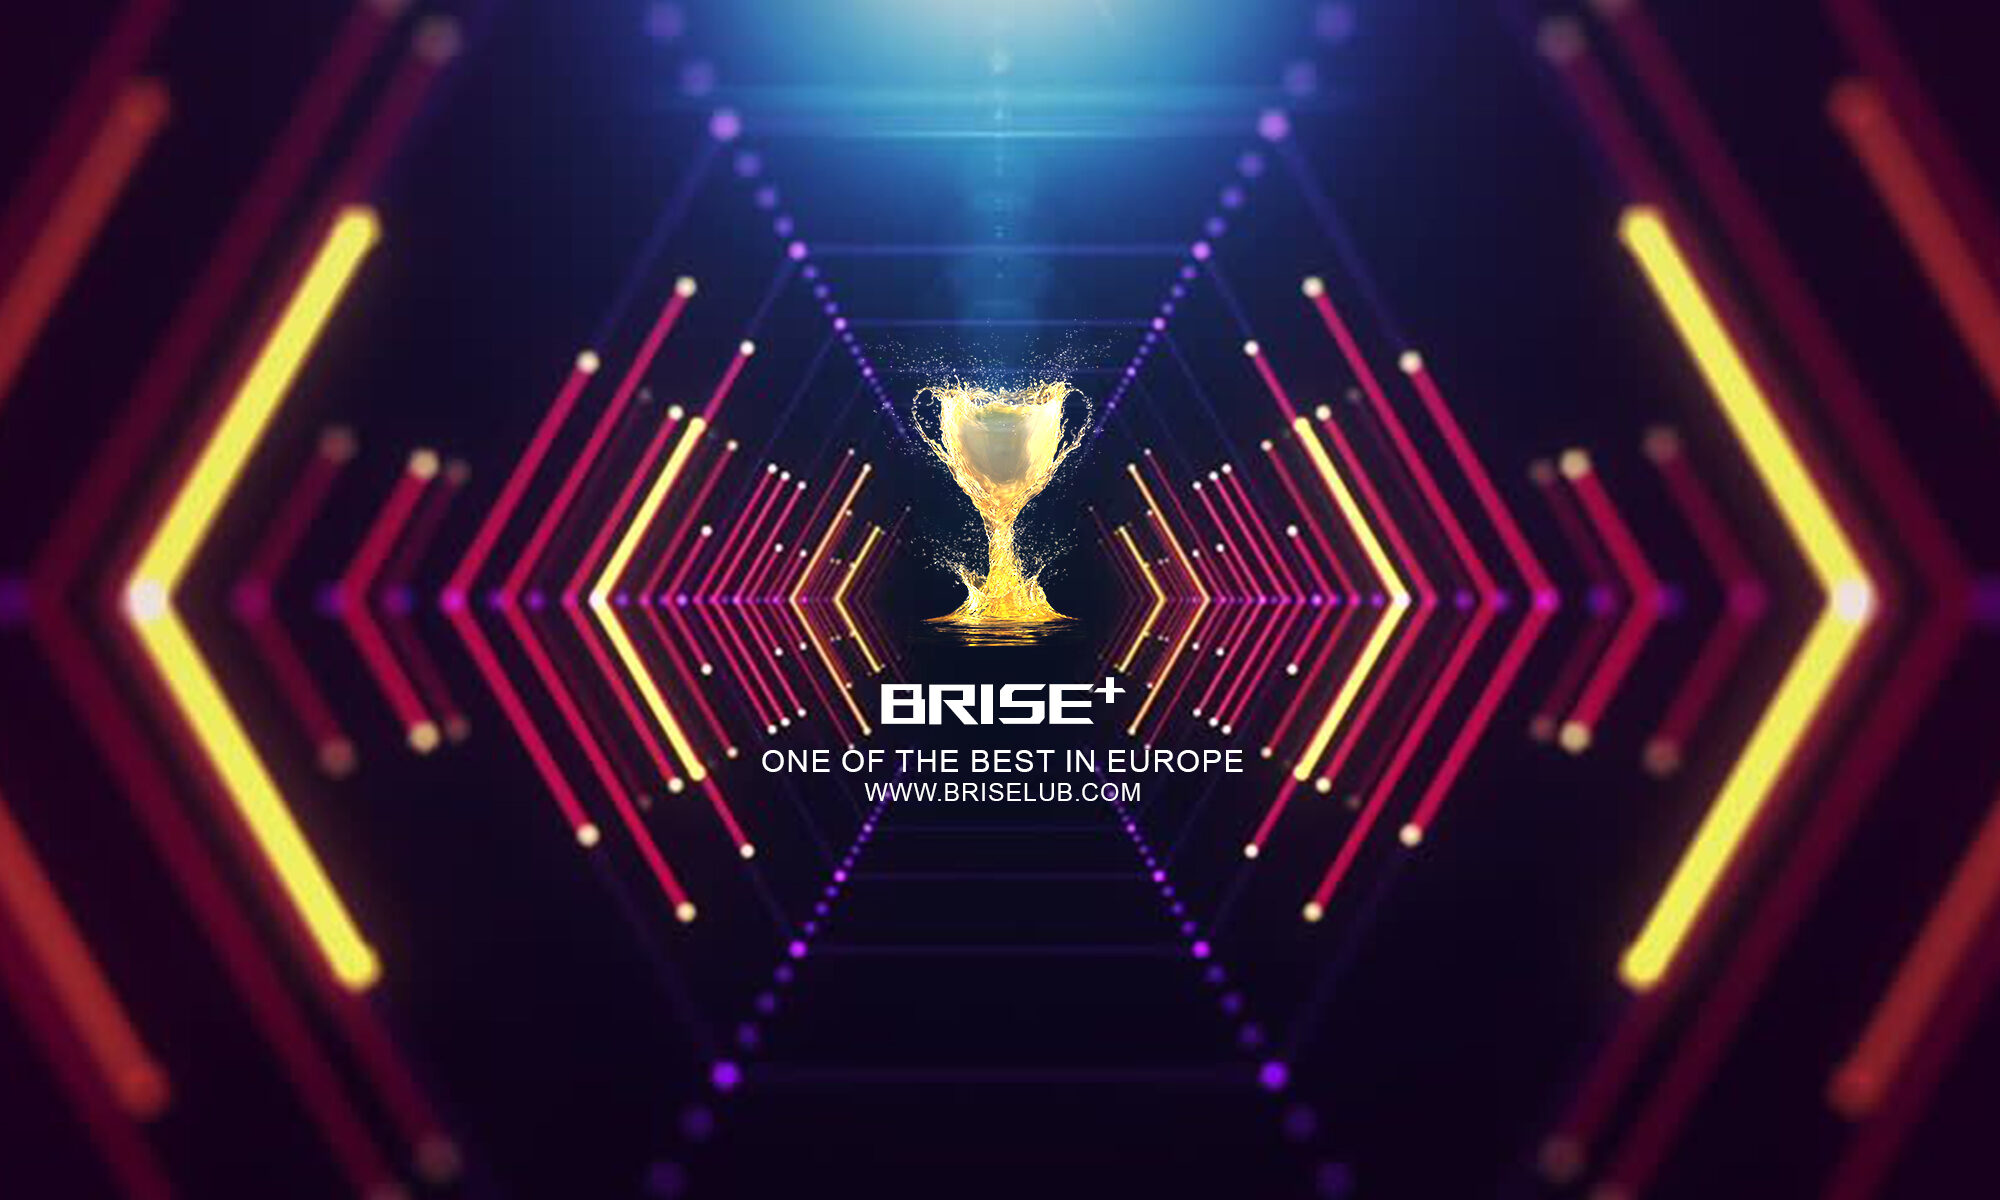 BRISE PLUS GRAPHIC OIL VICTORY CUP